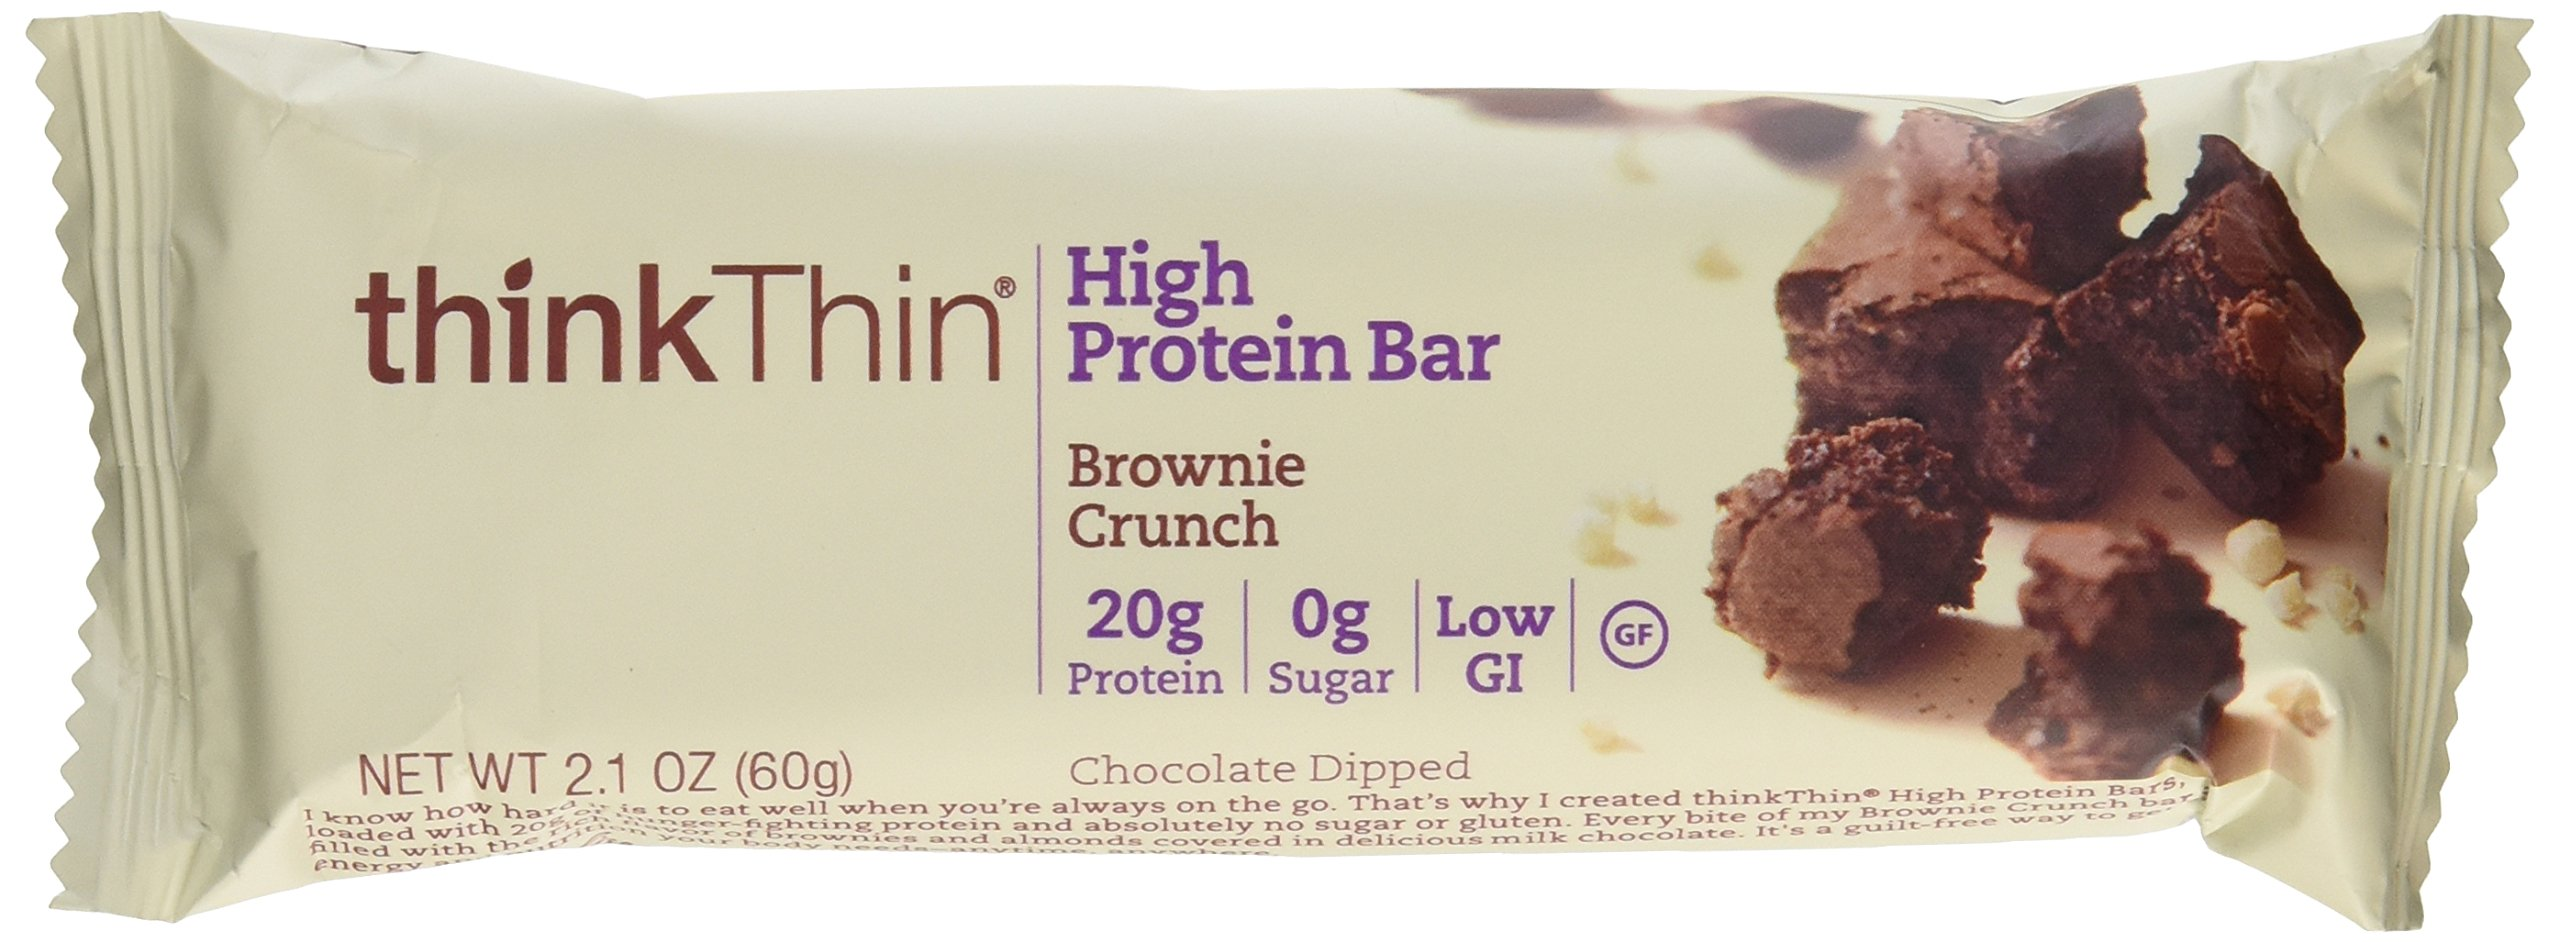 Think Thin 20 Pack (2 X Box of 10)- (Brownie Crunch) by thinkThin (Image #1)